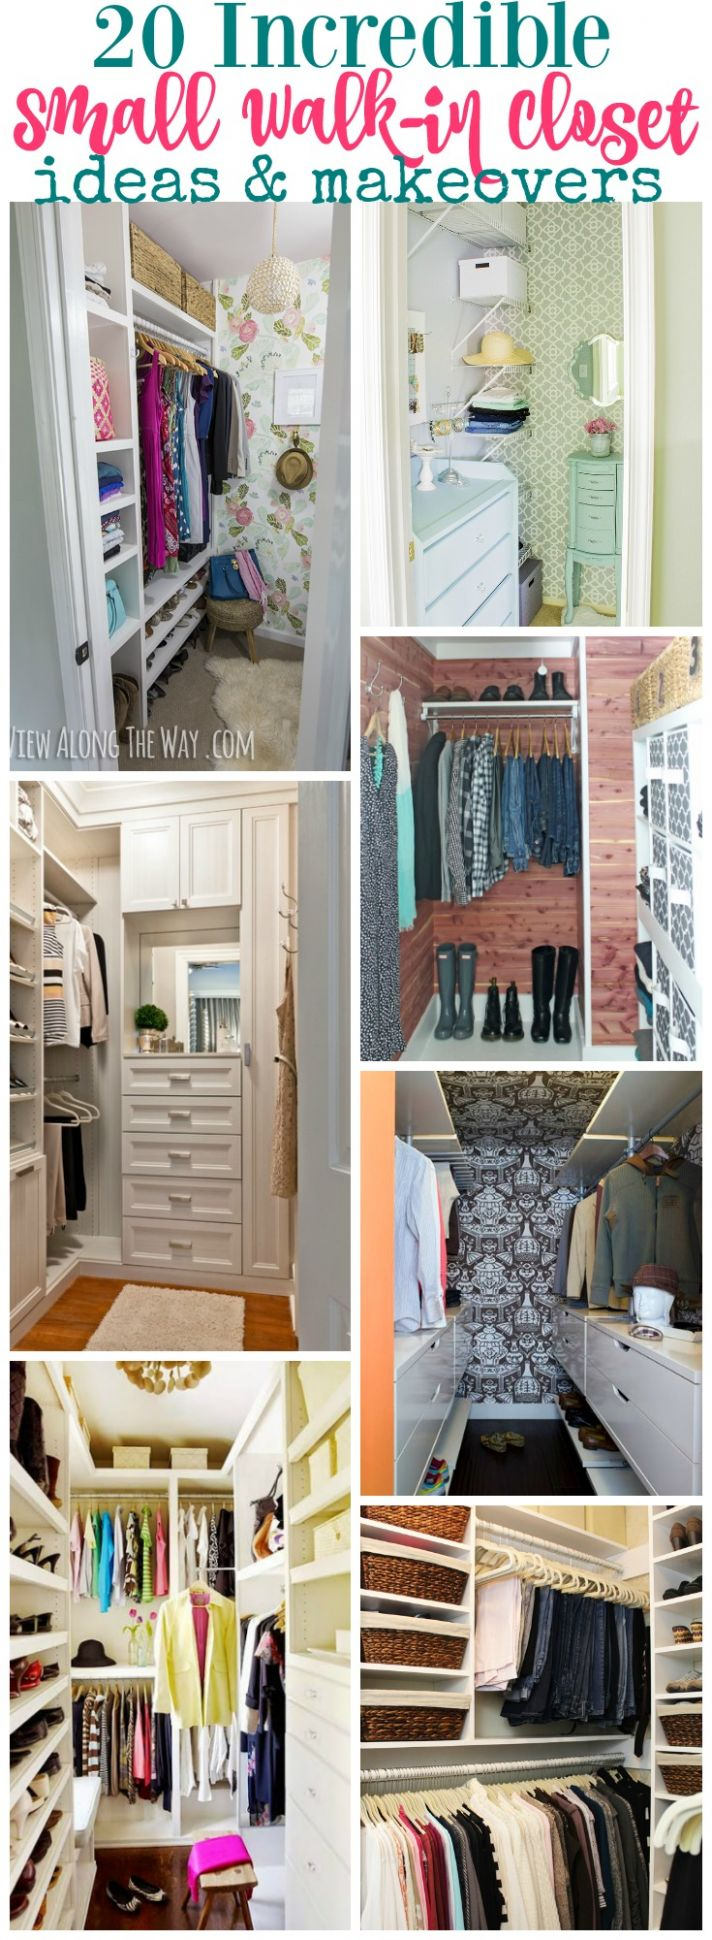 8 Incredible Small Walk-in Closet Ideas & Makeovers | The Happy ..